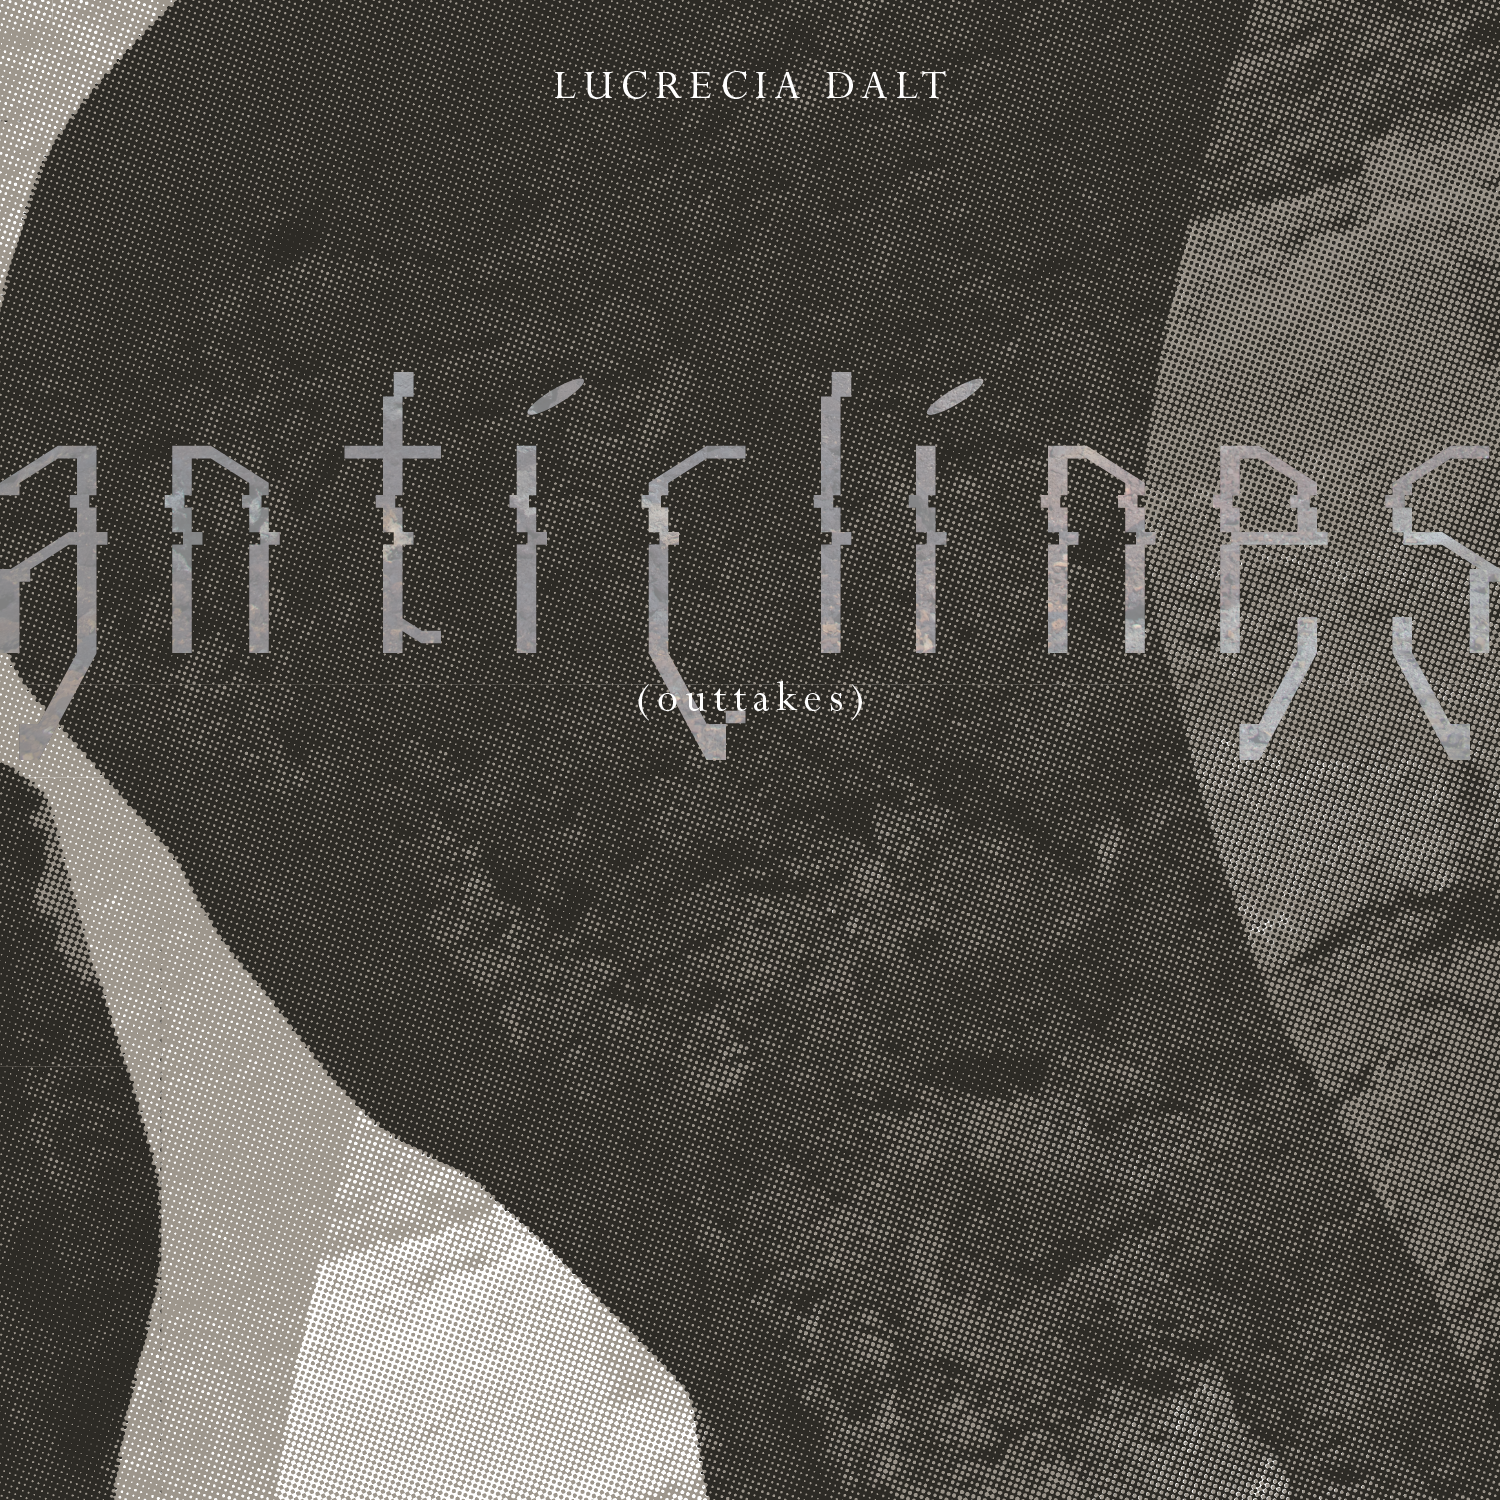 Lucrecia Dalt - Anticlines Outtakes